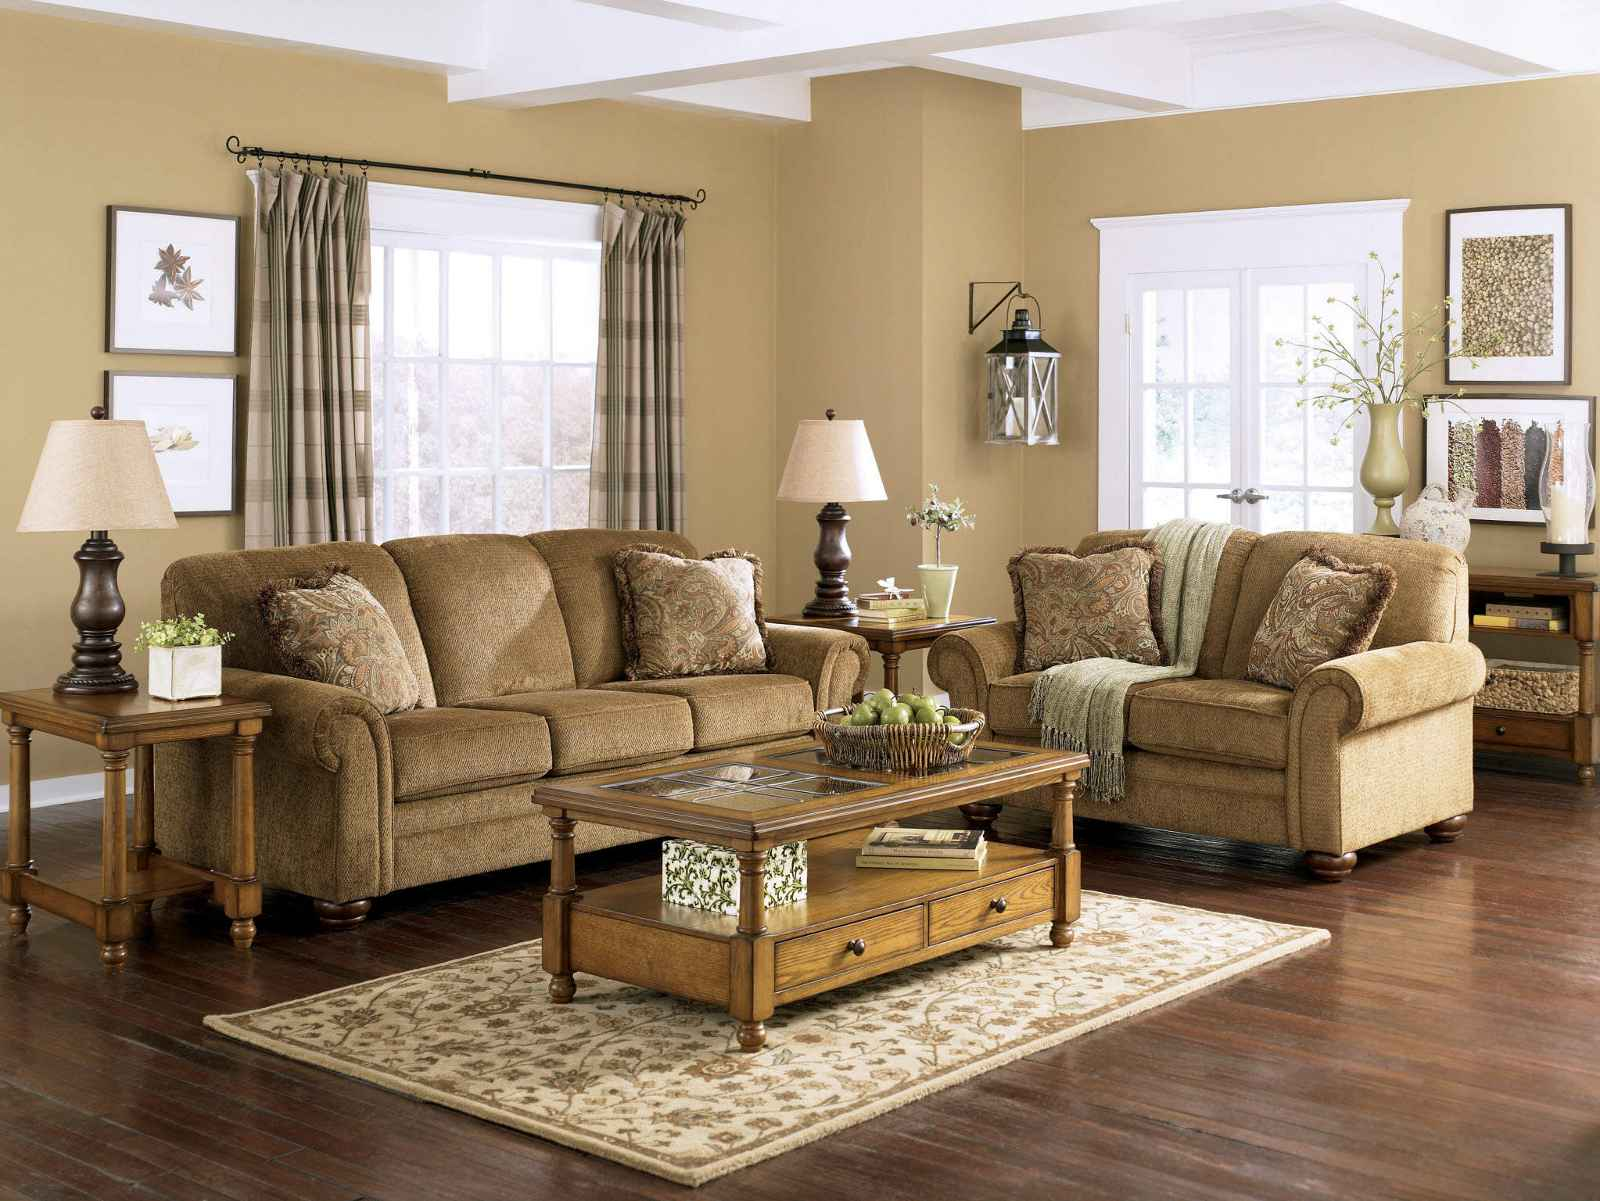 Wonderful Home Living Room Furniture Ideas 1600 x 1201 · 156 kB · jpeg